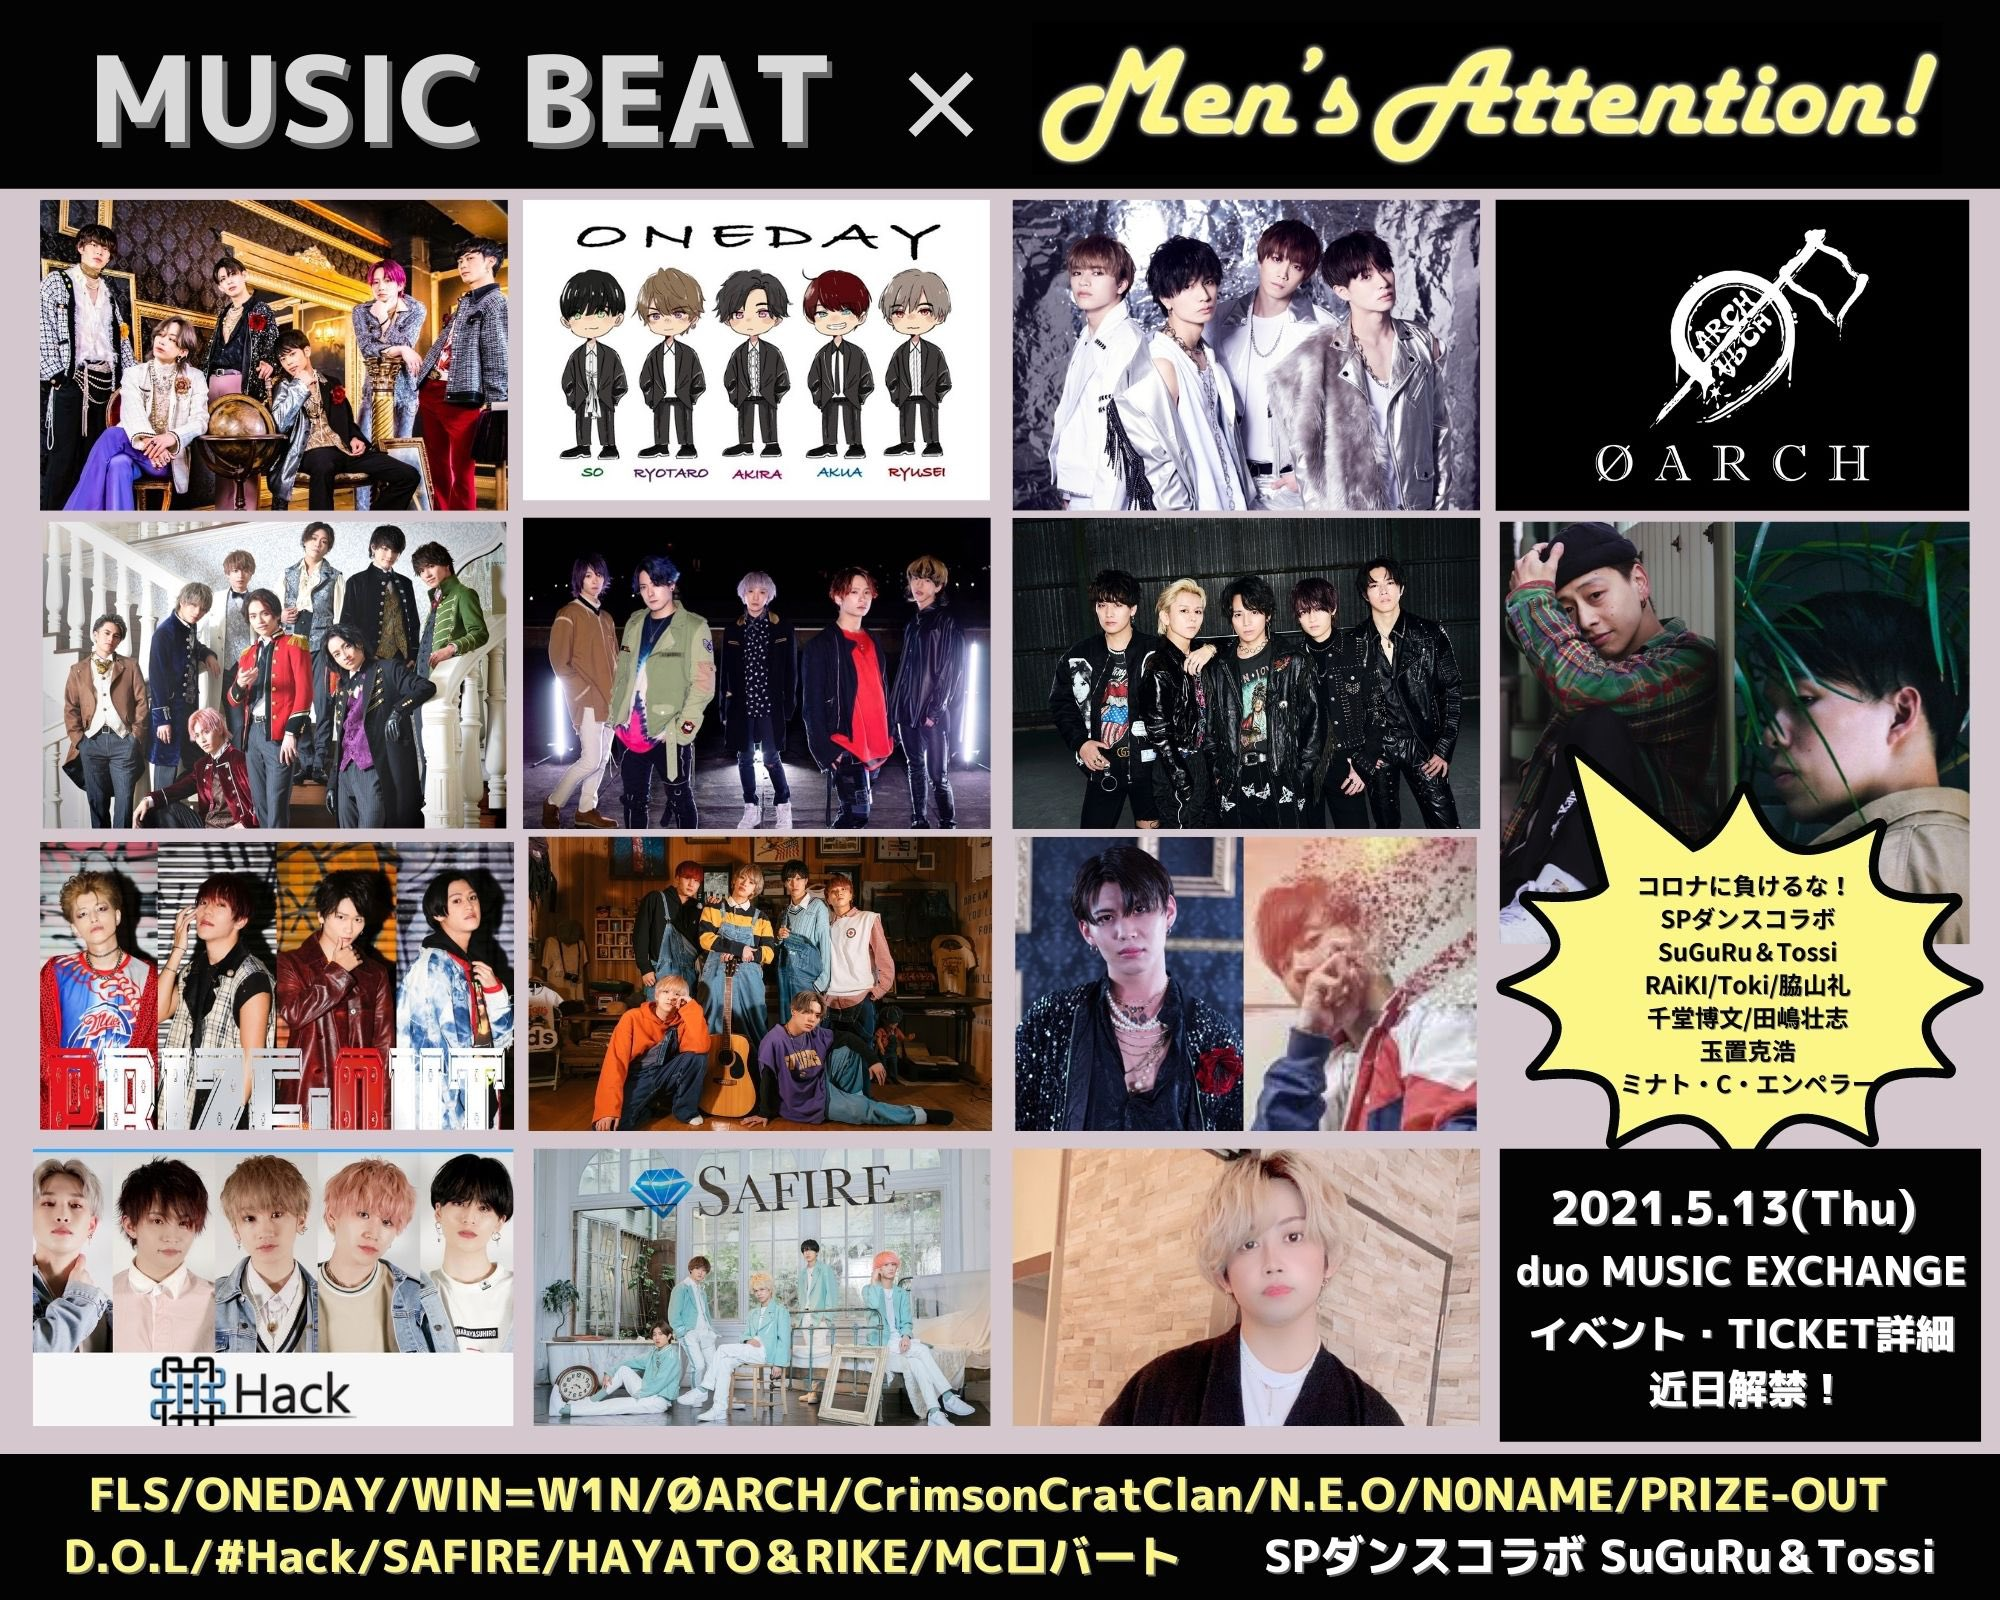 MUSICBEAT x MENS ATTENTION